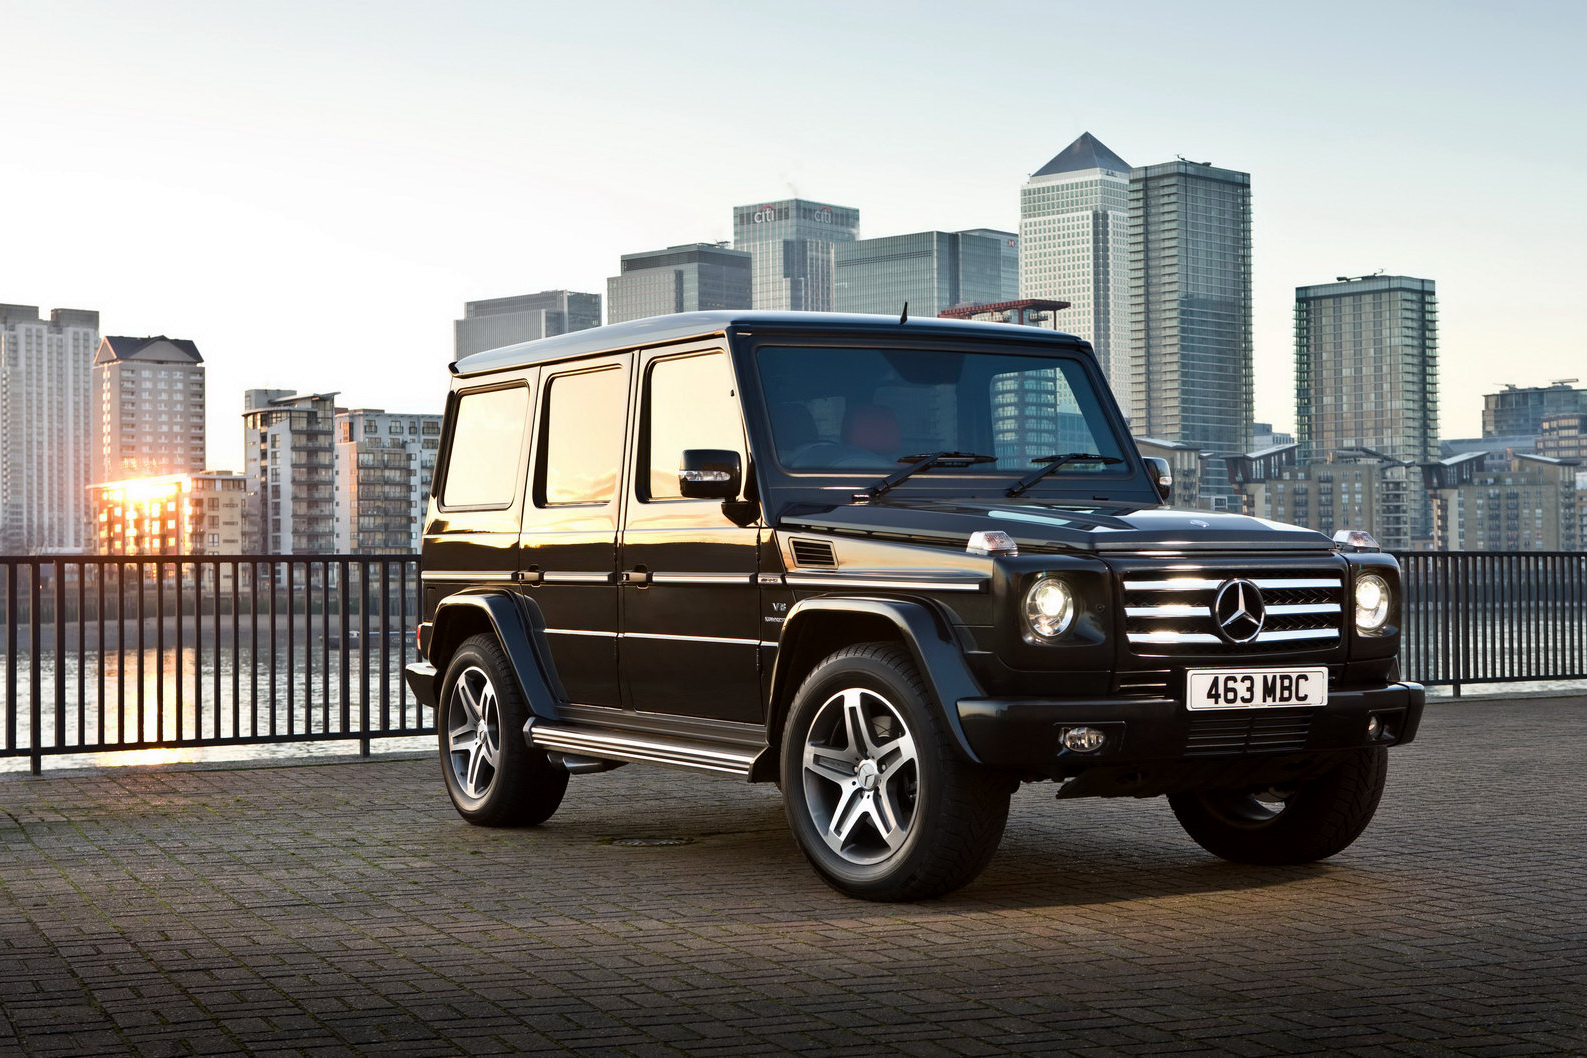 2012 Mercedes Benz G class AMG  body styling and body on frame construction